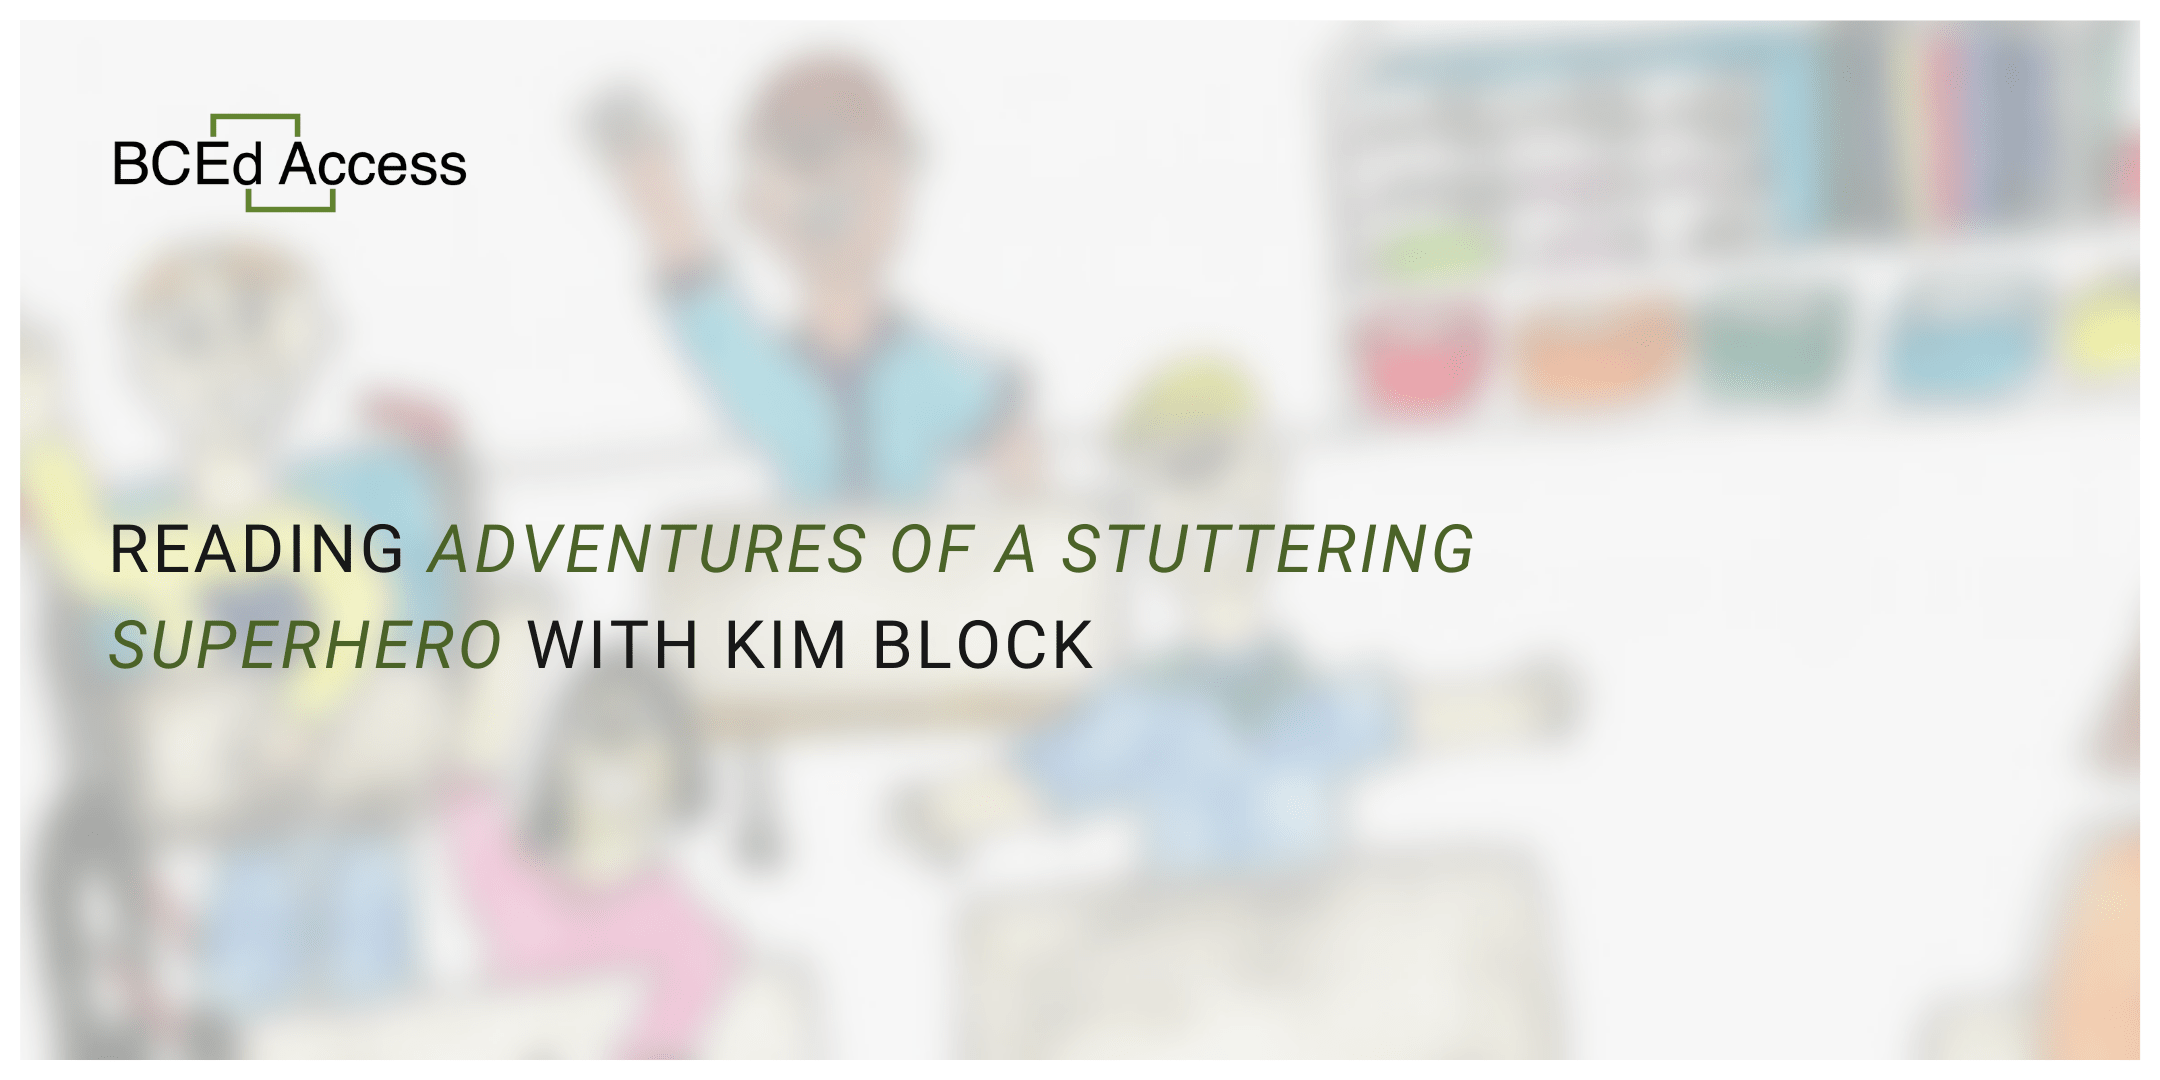 """Blurred image of a drawing with students in a classroom waving, overlaid with the BCEdAccess logo and the text, """"Reading 'Adventures of a Stuttering Superhero' with Kim Block."""""""